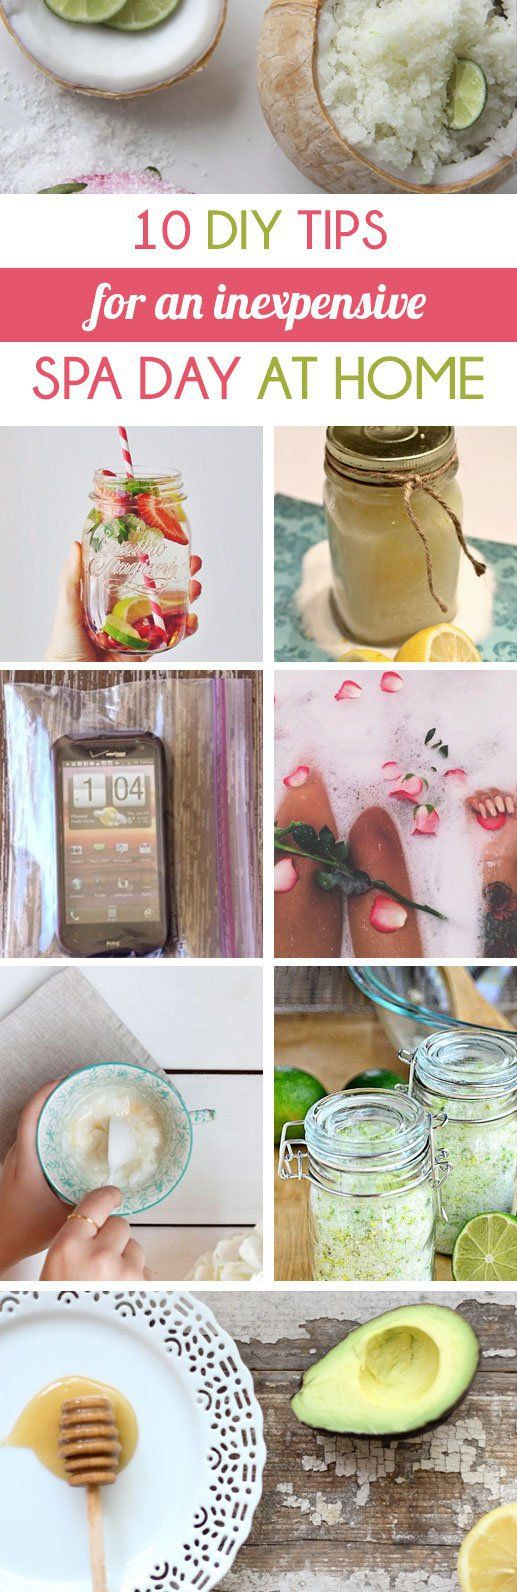 10 Diy Tips For An Inexpensive Spa Day At Home Spa Day At Home